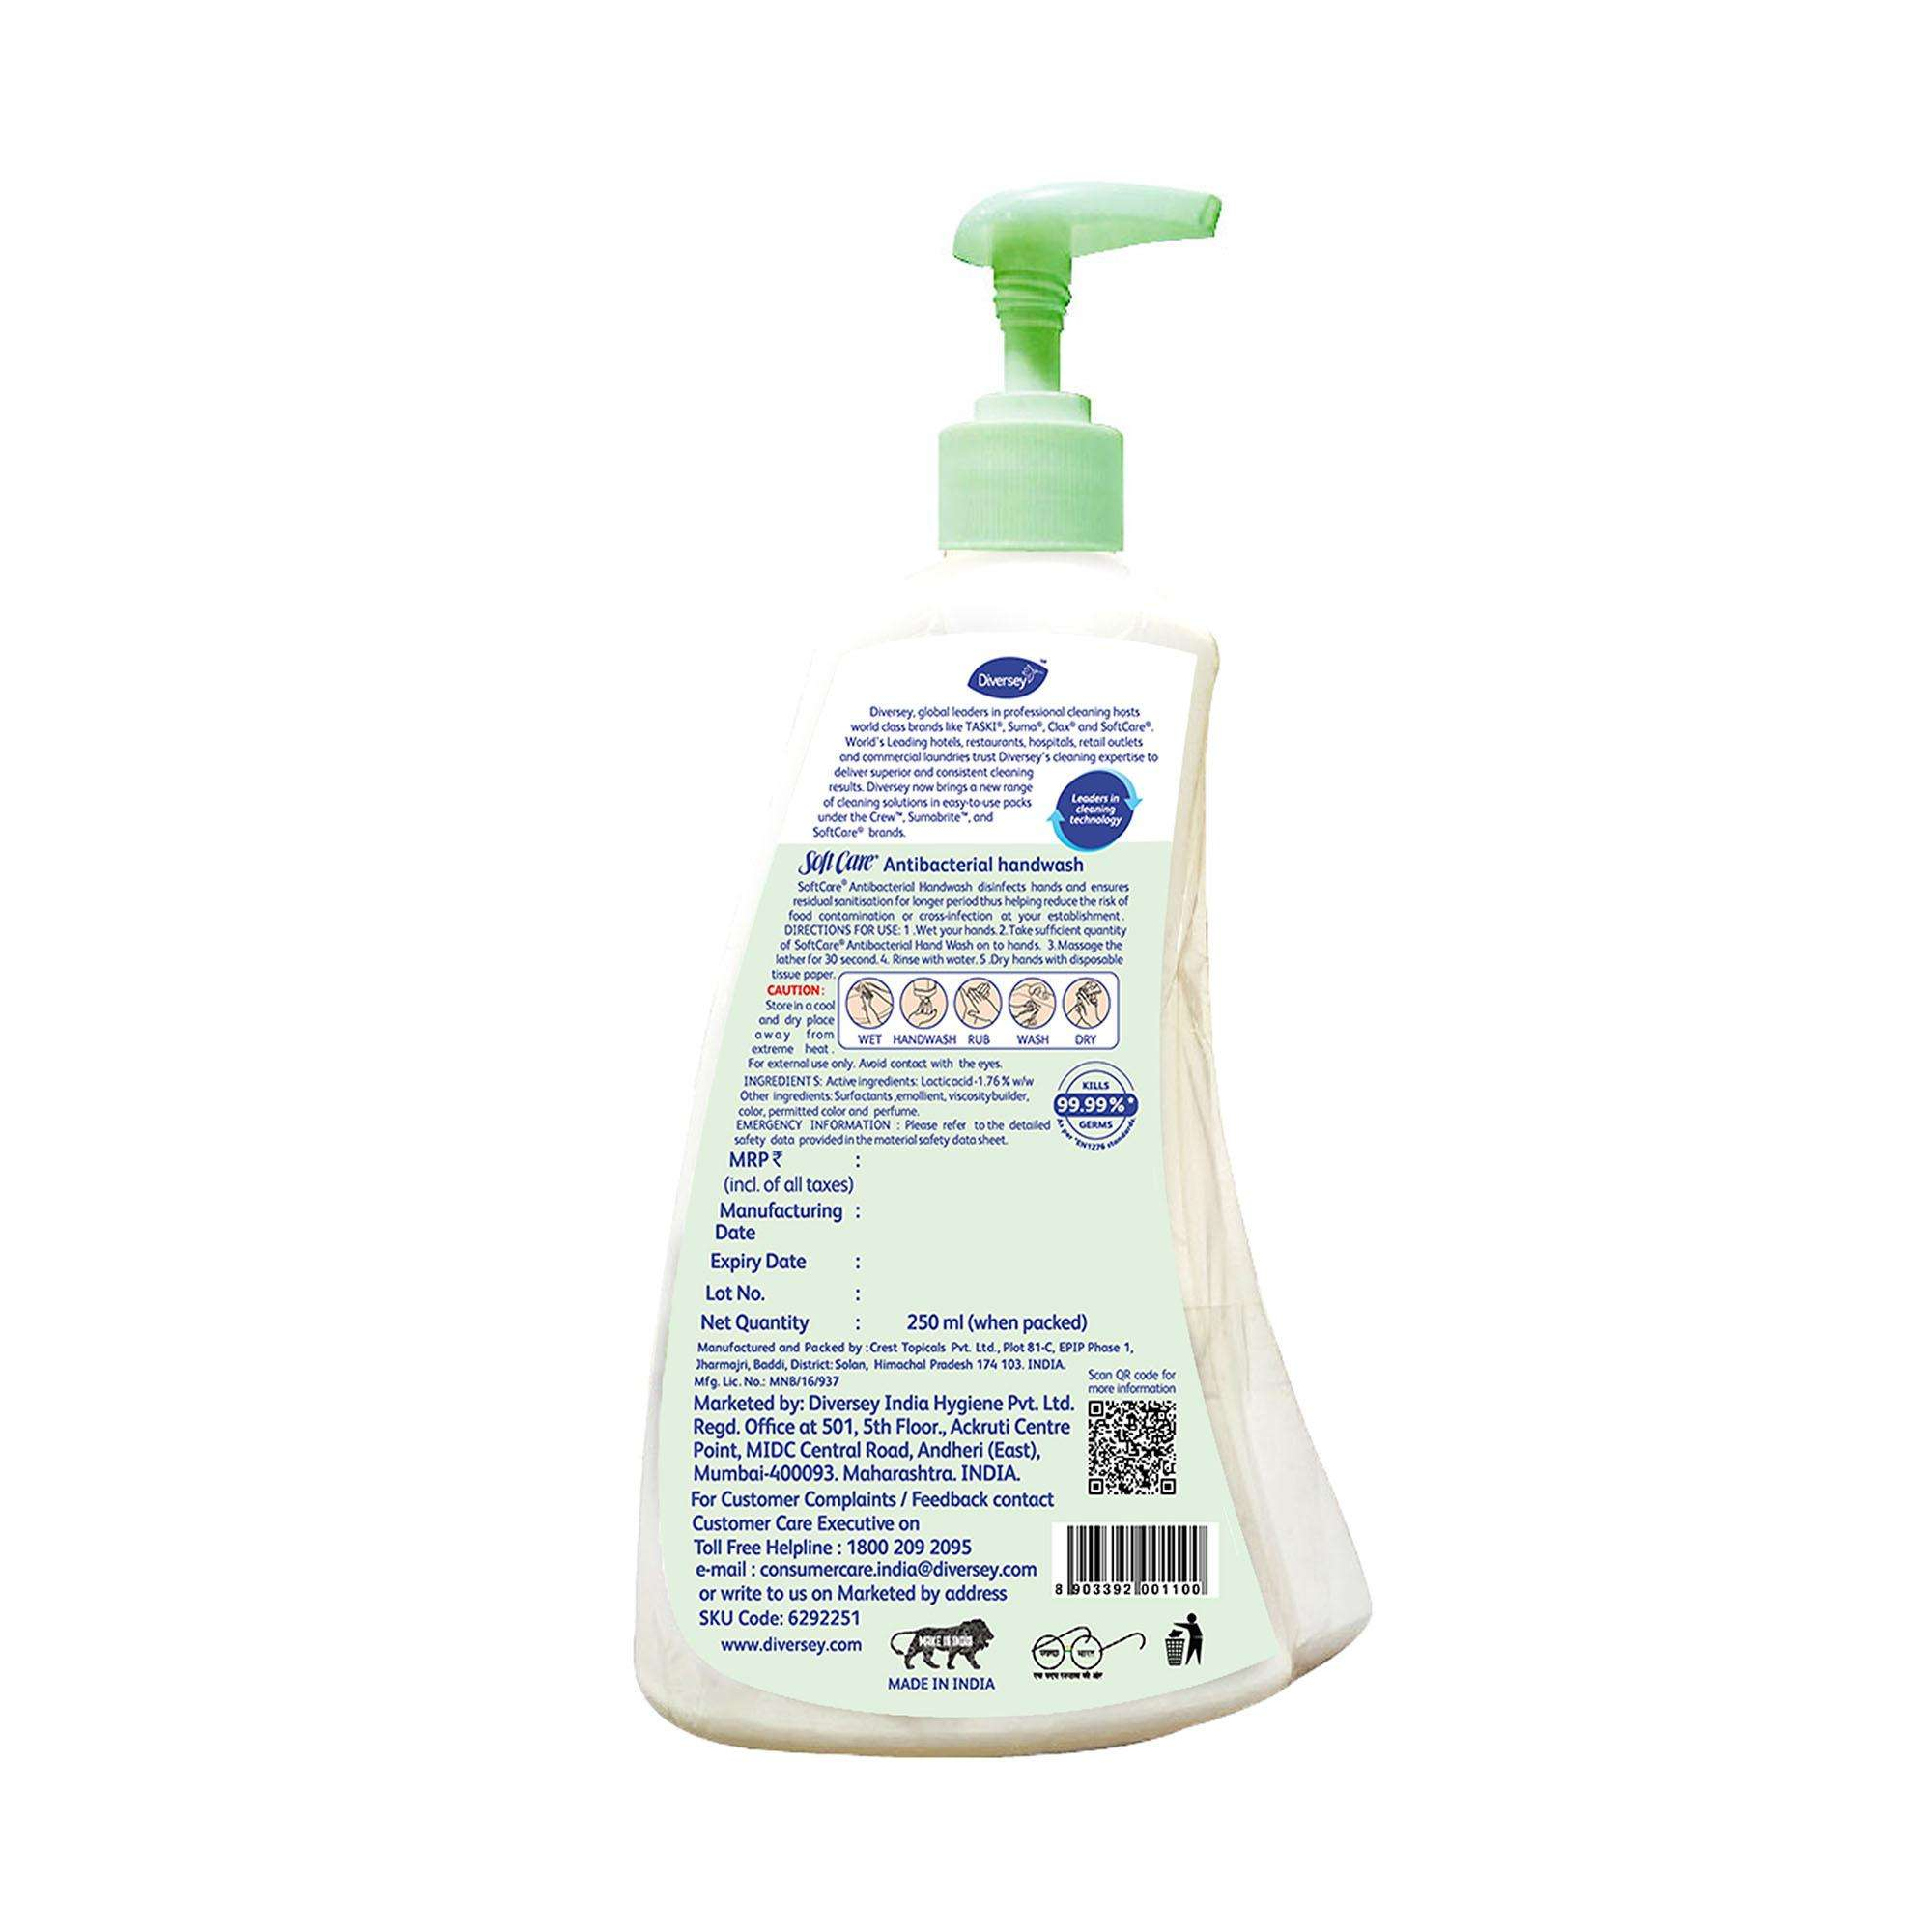 Softcare%20Antibactirial%20Hanwash%20with%20Fragrance%20250%20ml%20back2000x2000.jpg